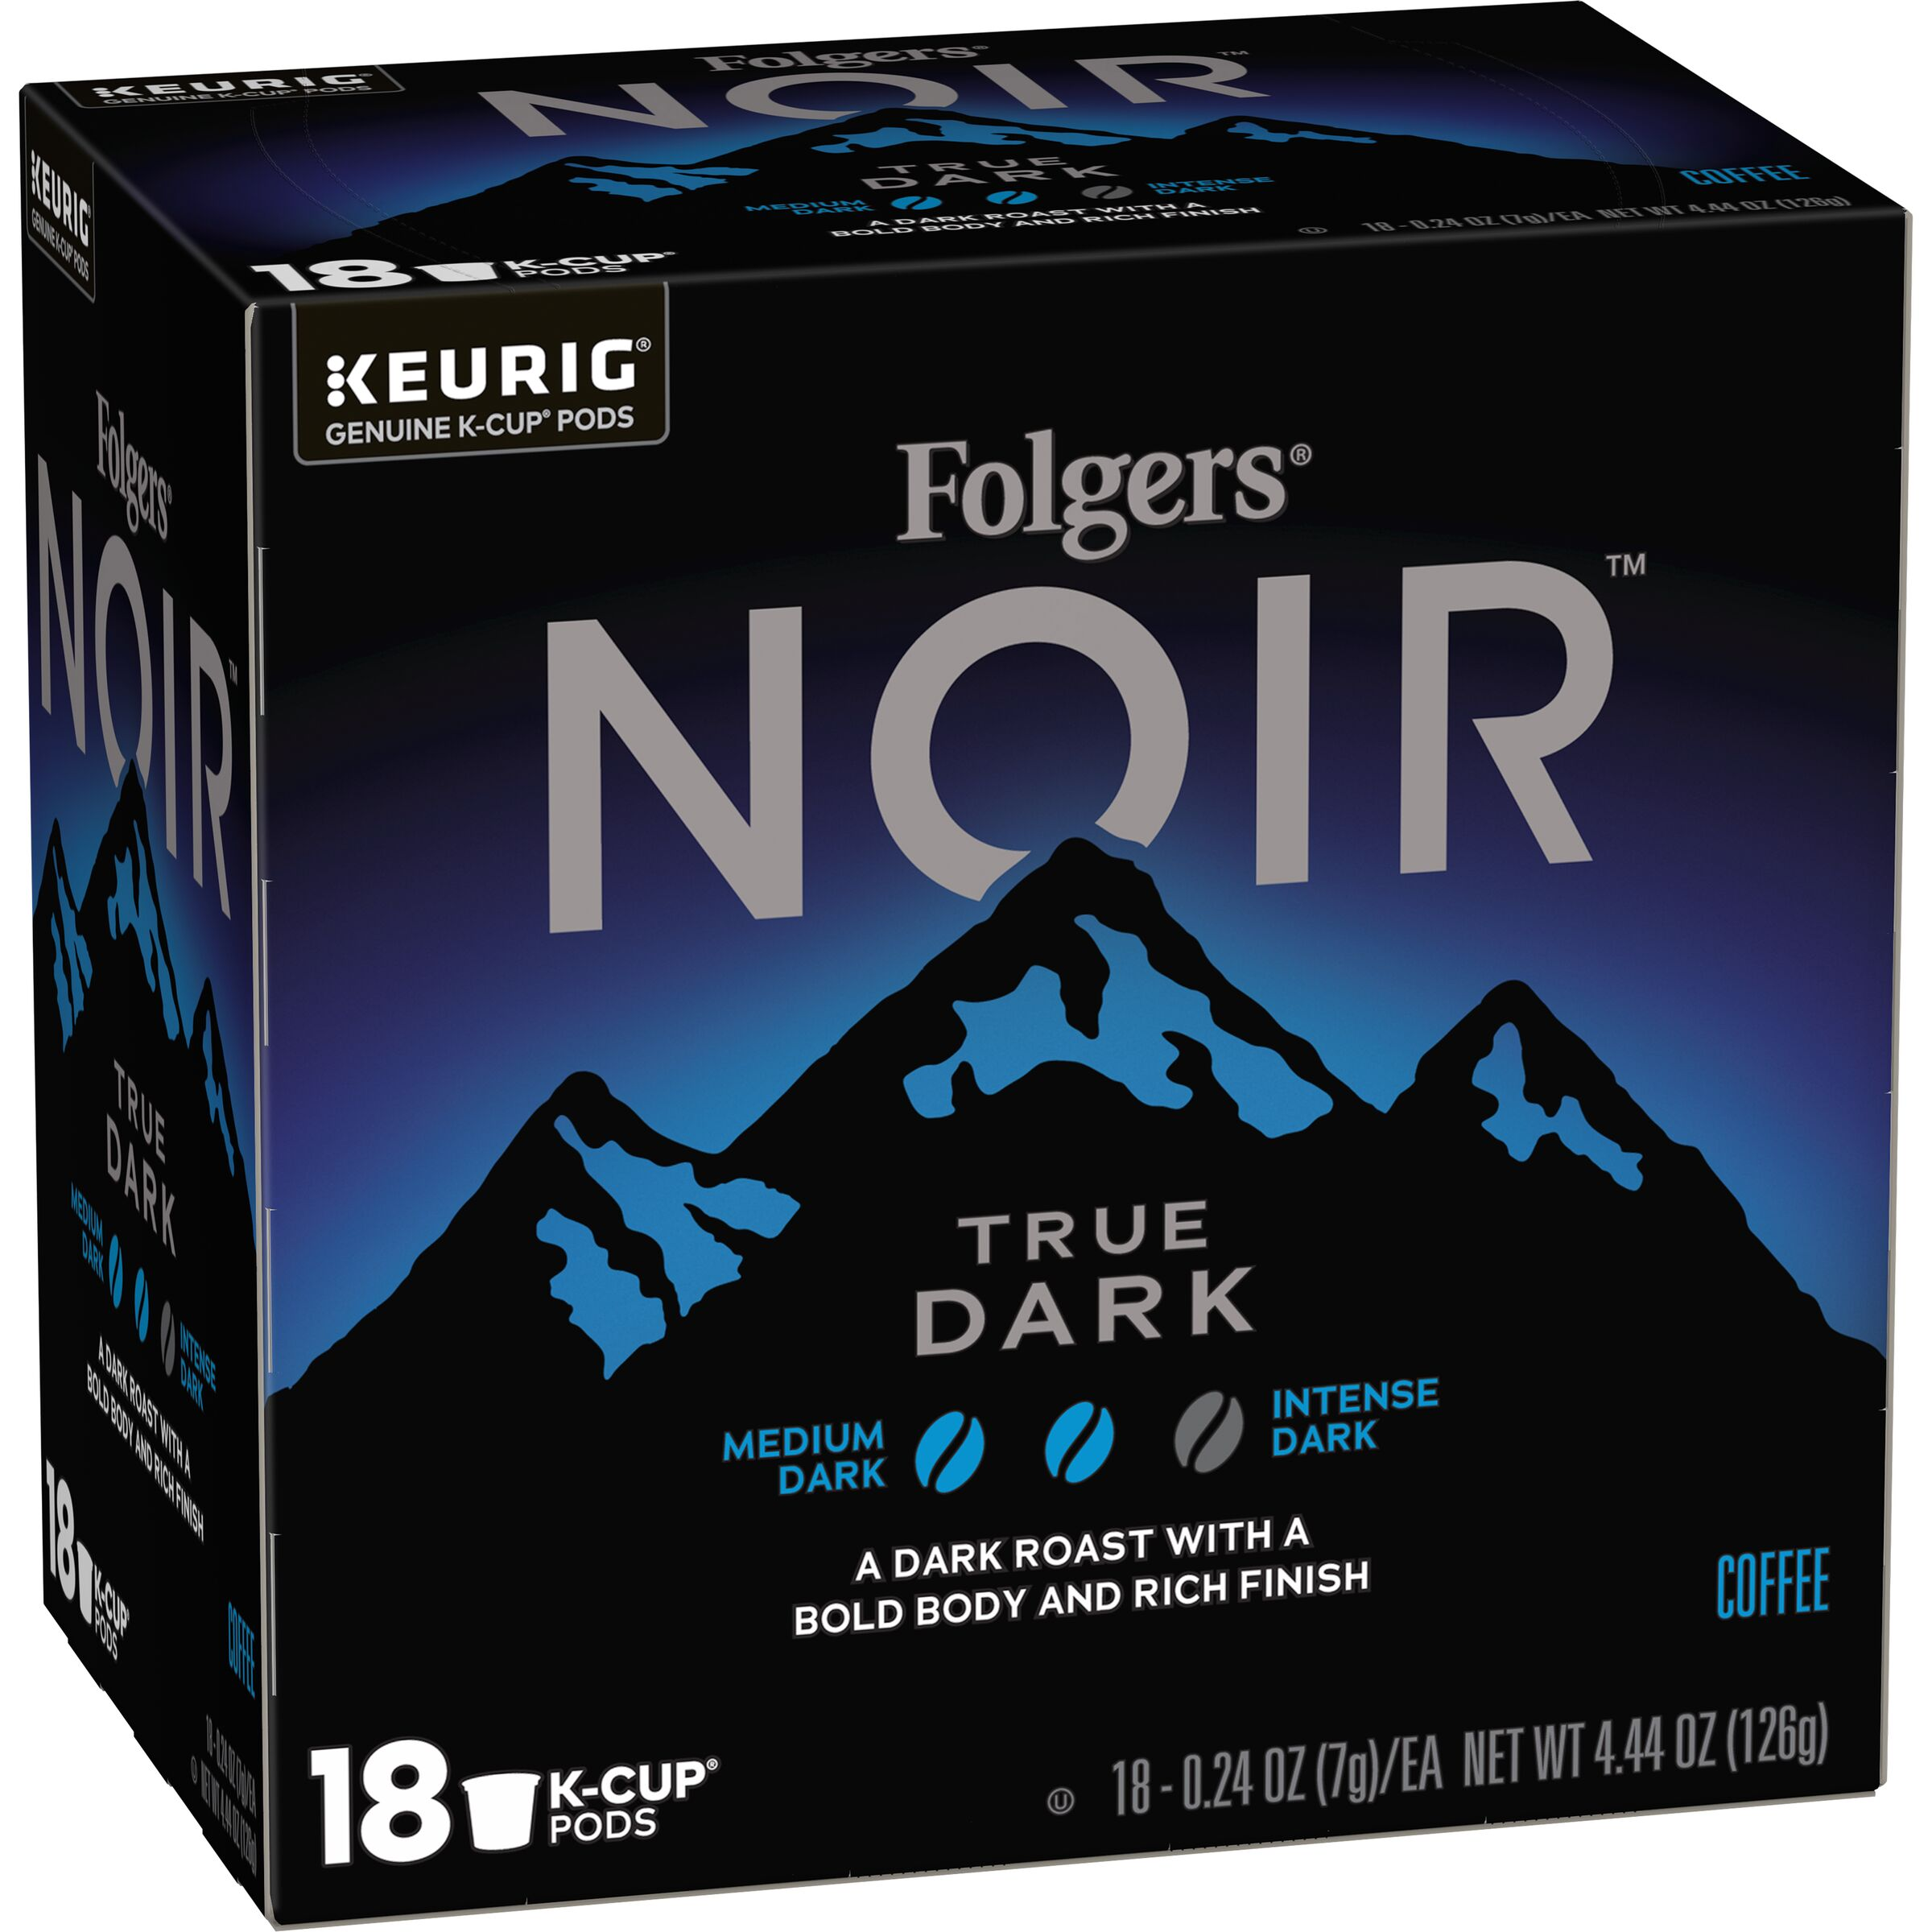 Folgers Noir True Dark K-Cup® Pods